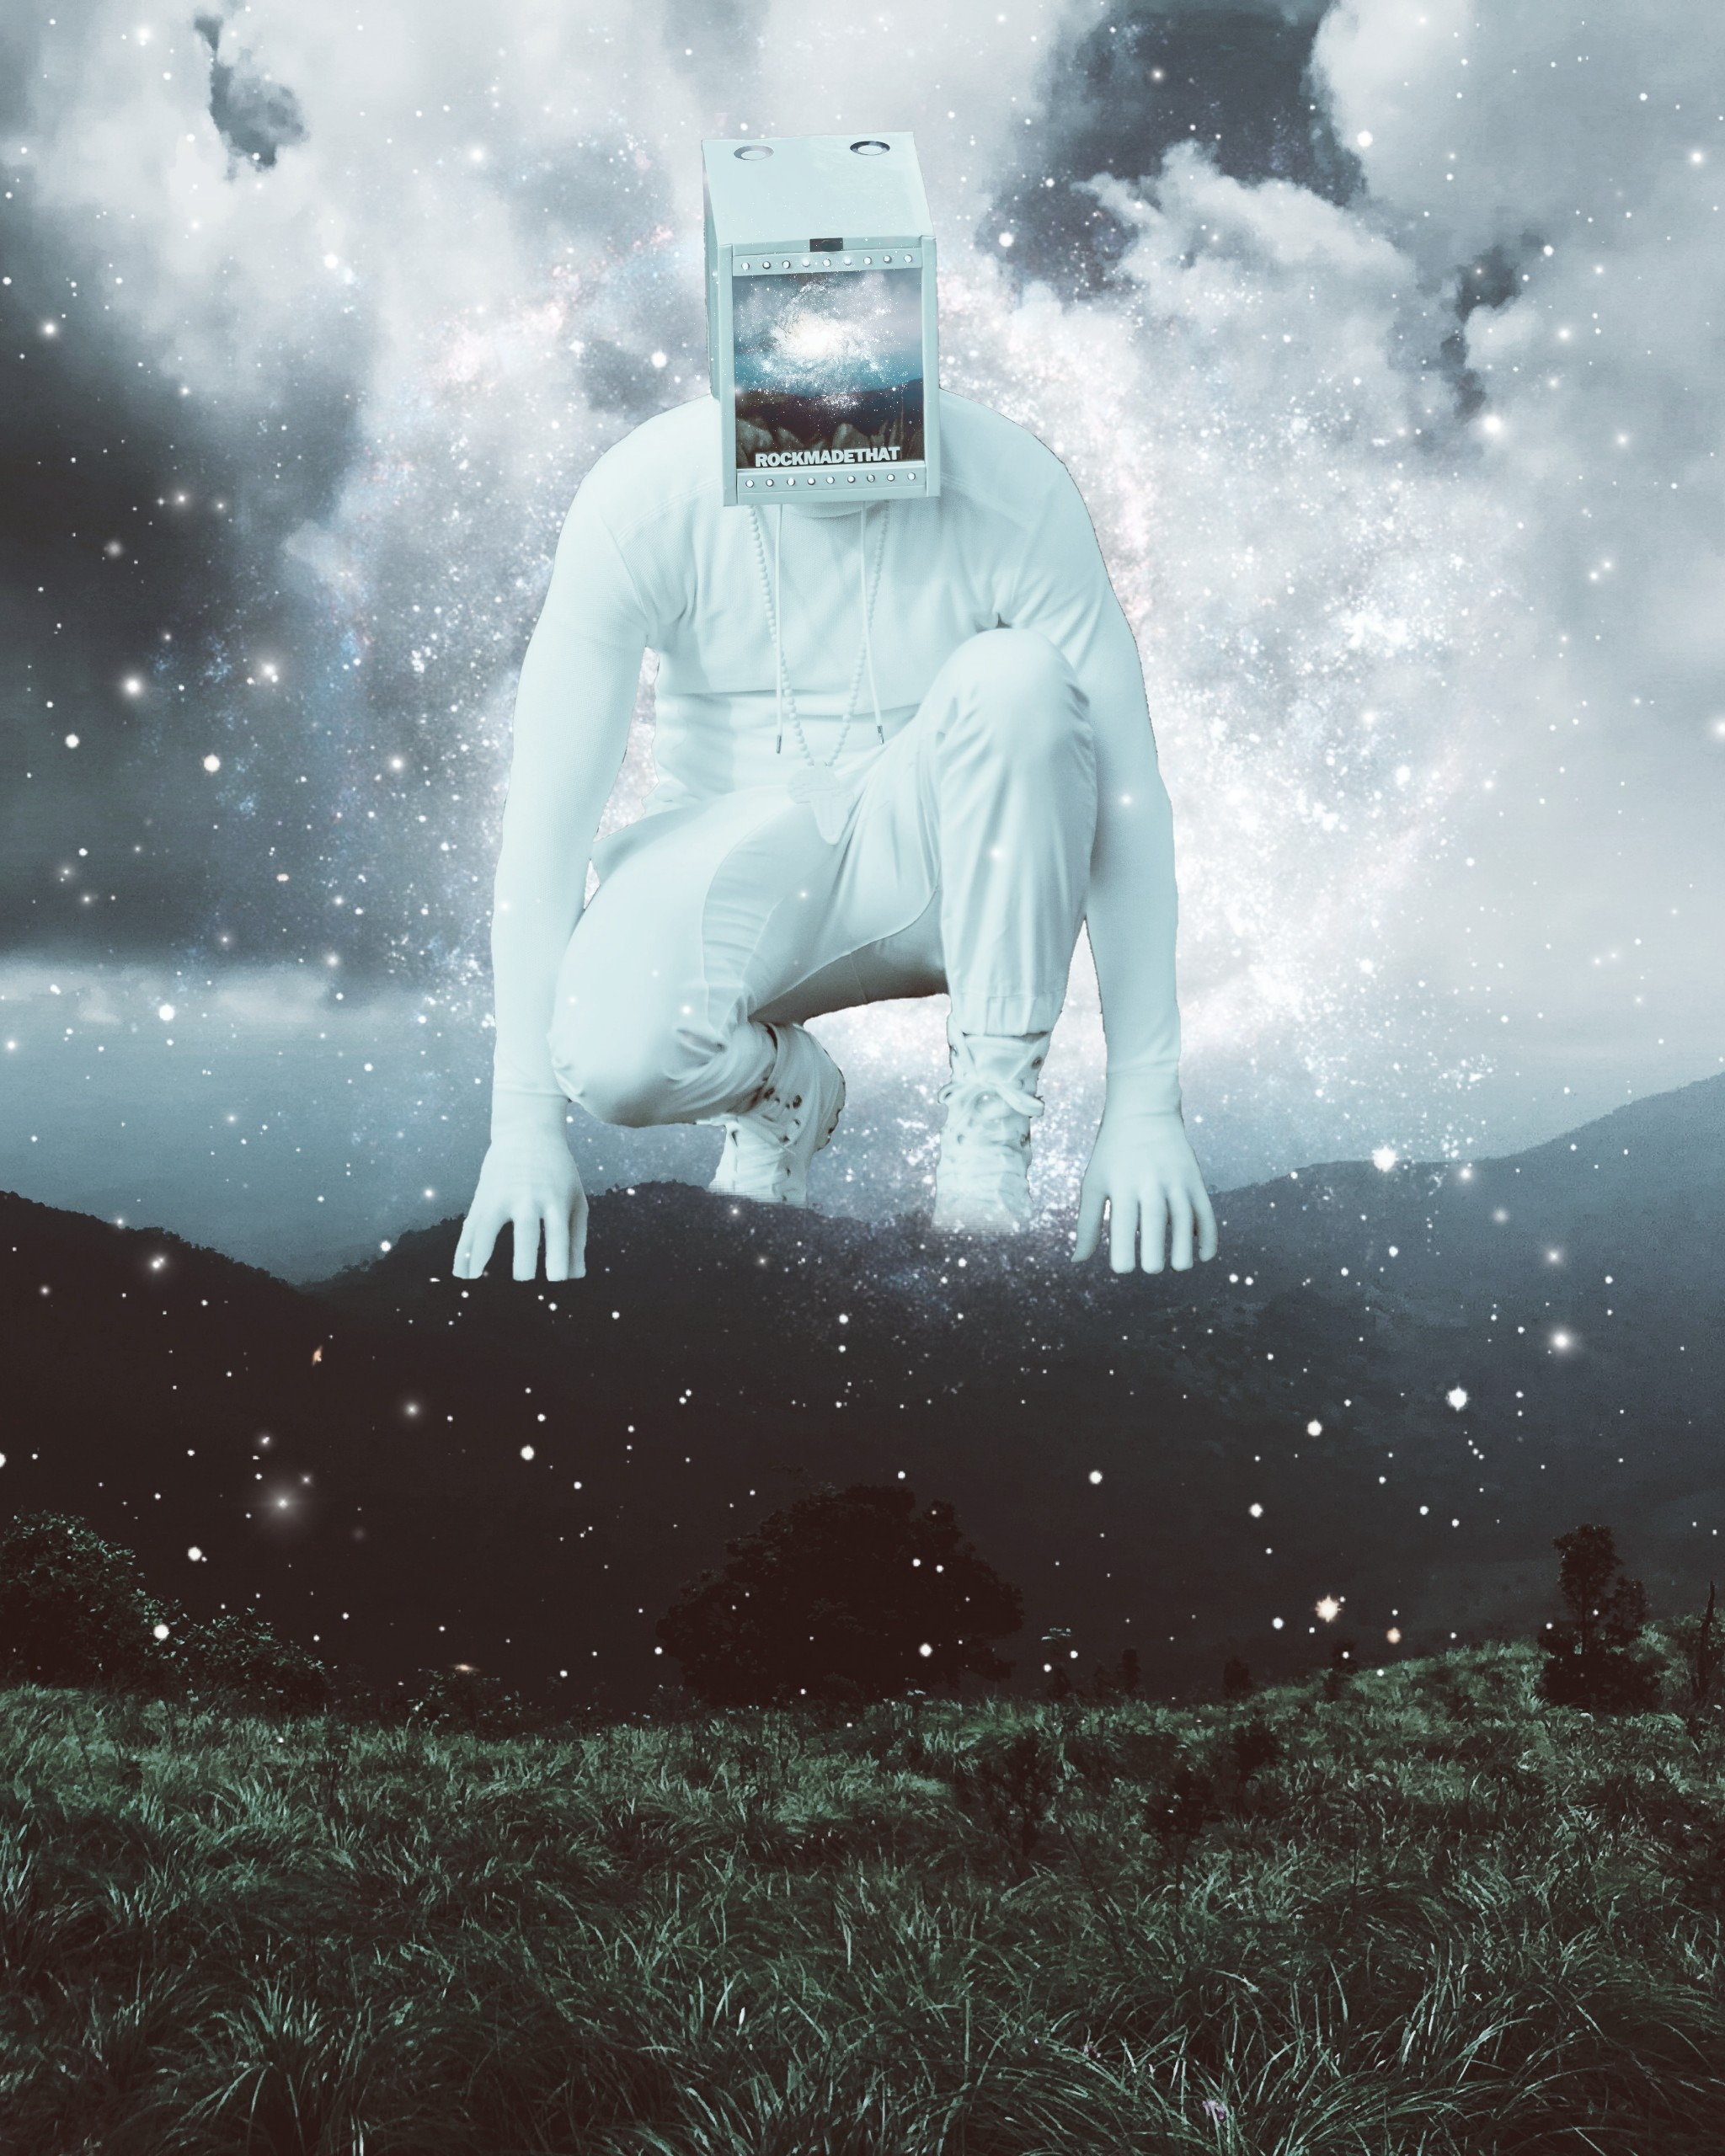 #freetoedit @rockmadethat #mask #faceless #stars #galaxy #nature #surrealism #robot #alien #cyborg #starseed #starboy #mountains #picsart